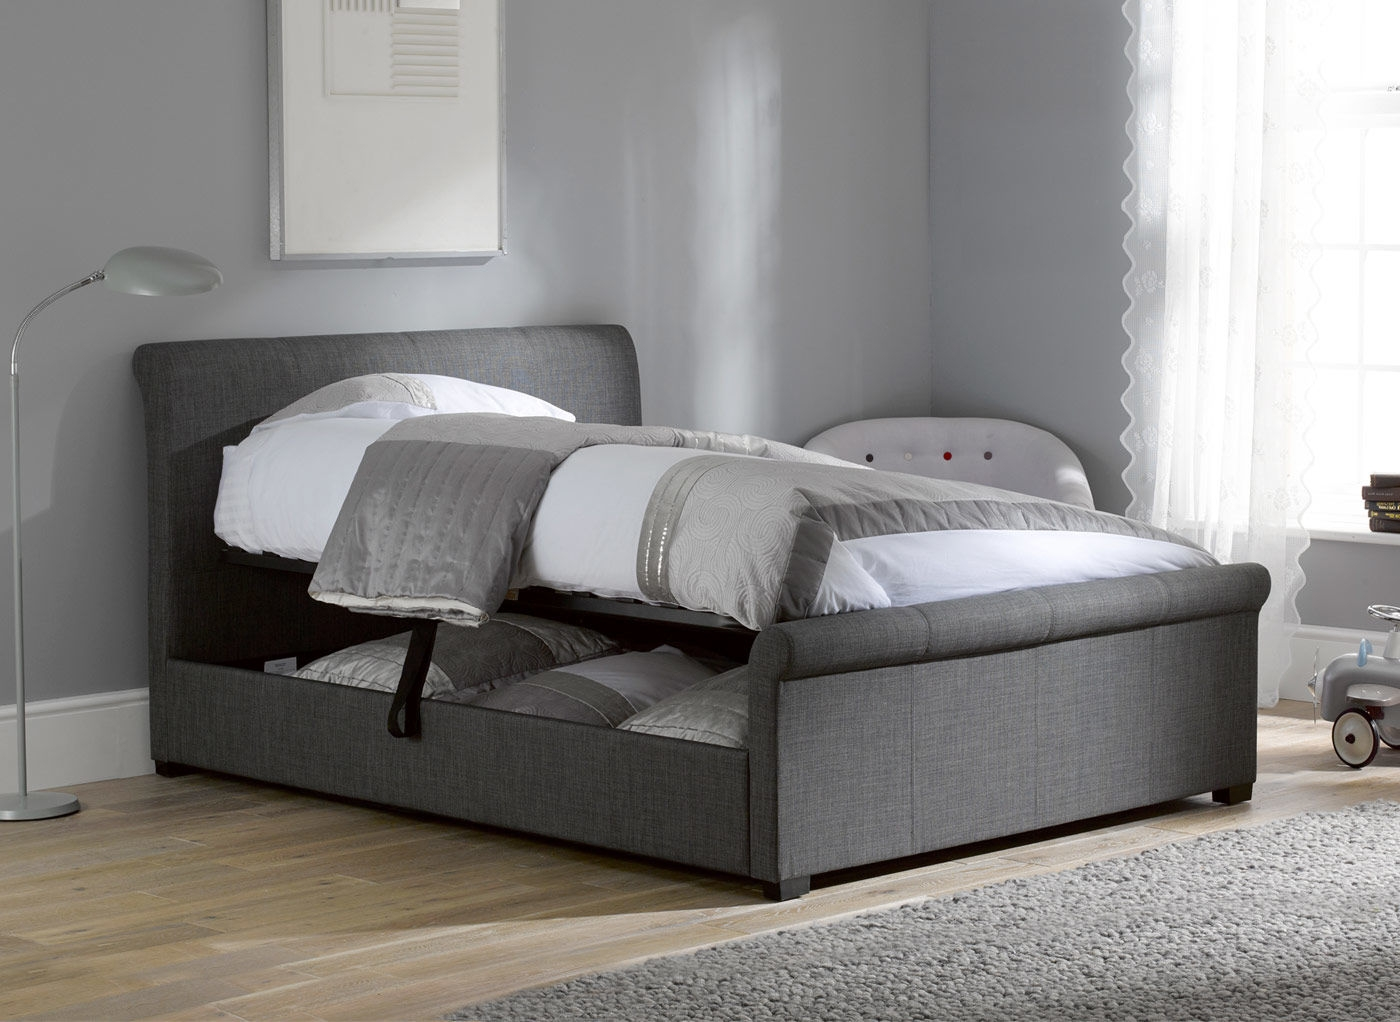 Black Double Bed Frame With Storage